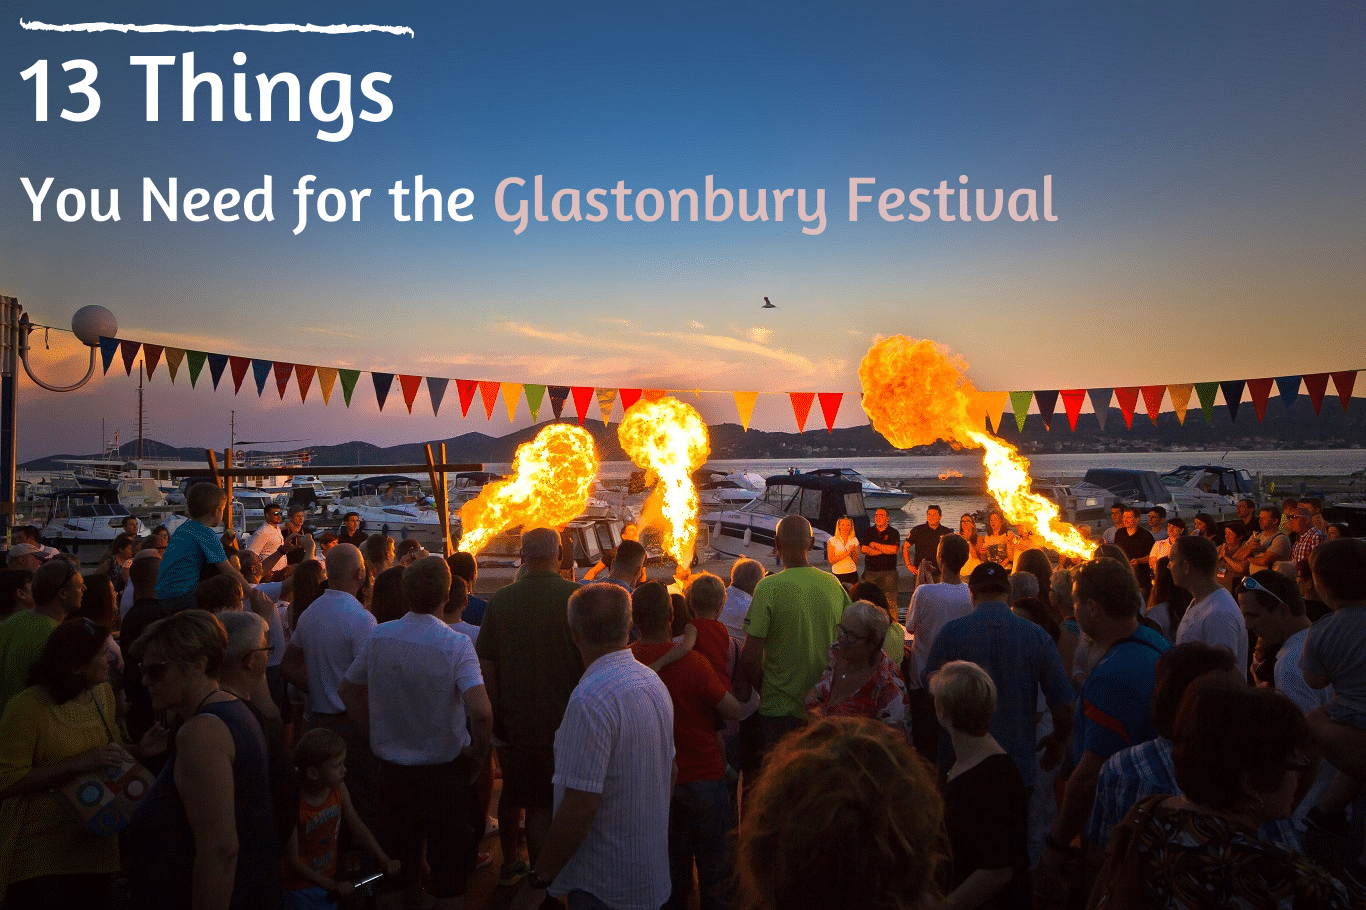 13 Things You Need for the Glastonbury Festival